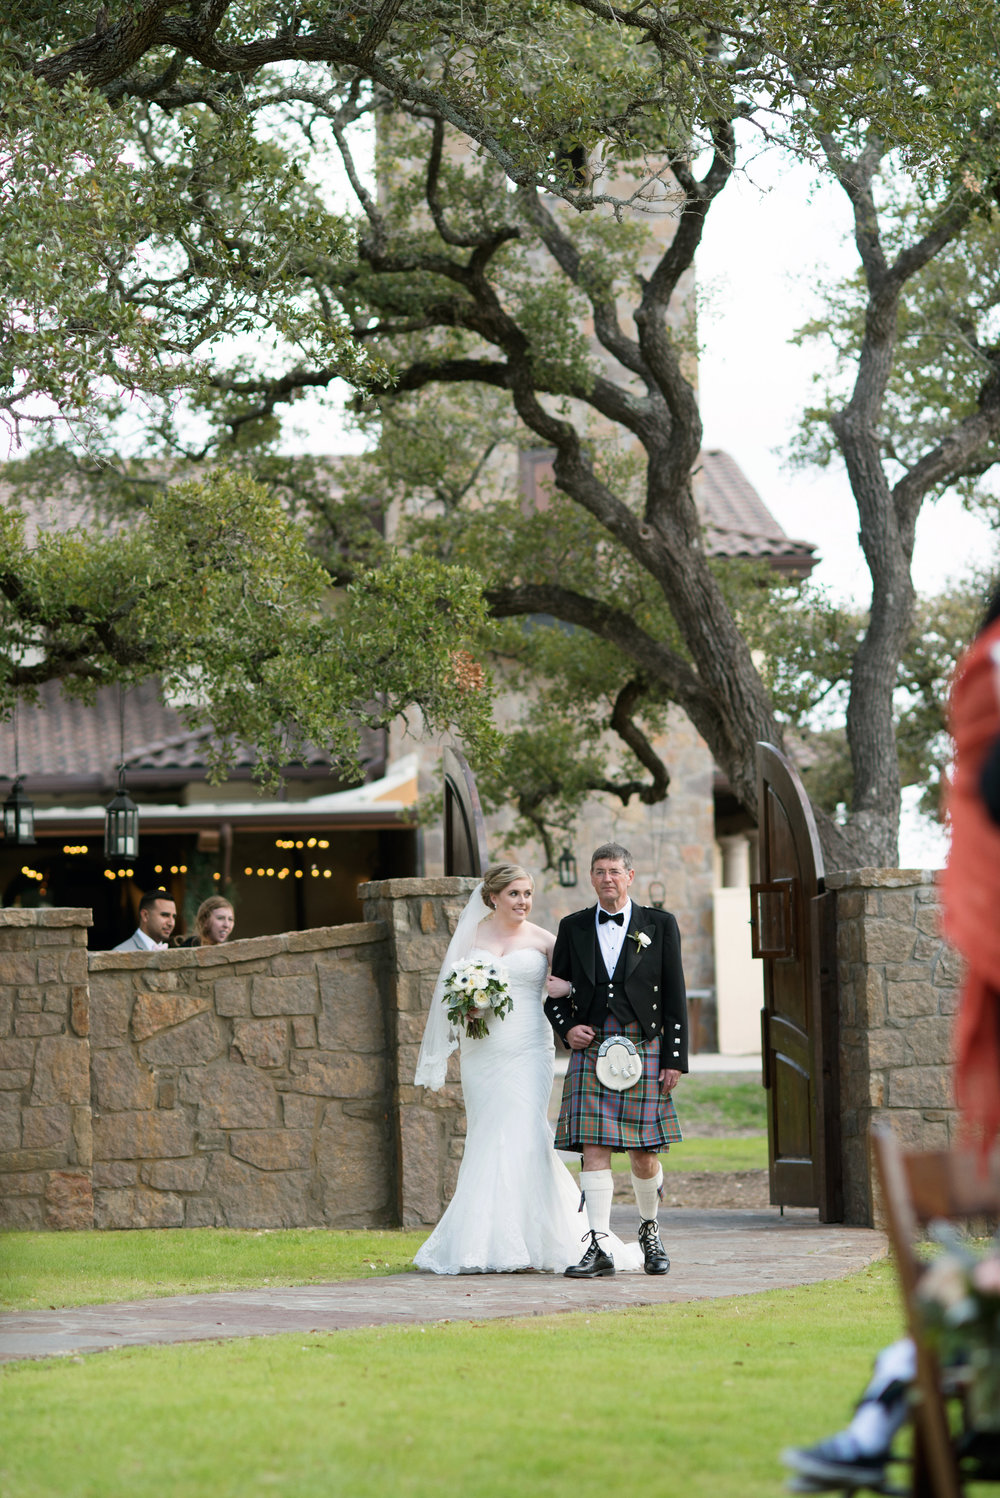 Ma Maison Austin Wedding Venue_ Austin Wedding Planner Heavenly Day Events _ Kristi Wright Austin Wedding Photographer20160306_0145.JPG